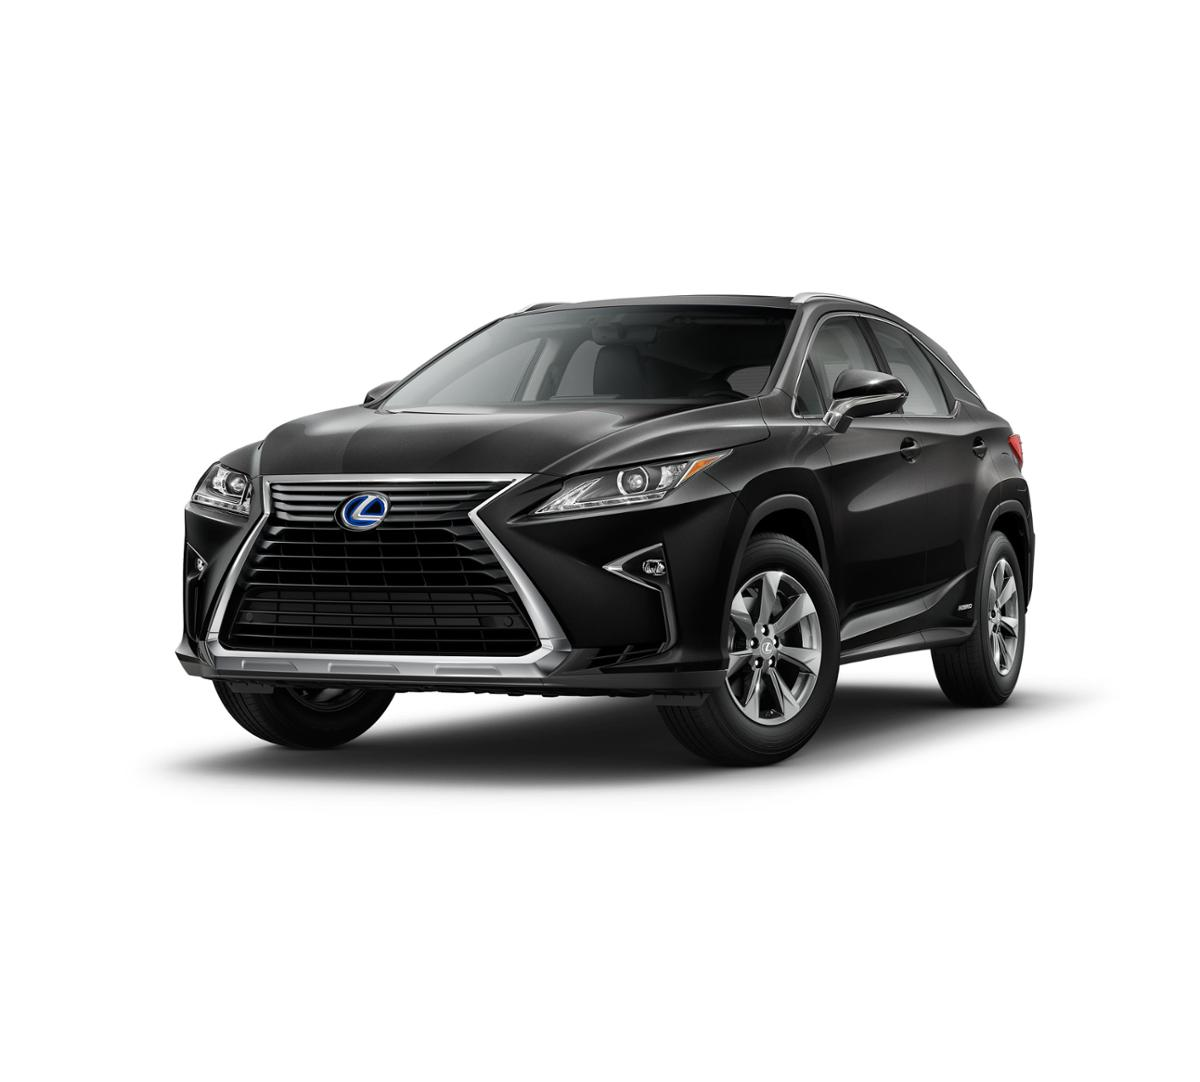 2017 Lexus RX 450h Vehicle Photo in Santa Barbara, CA 93105